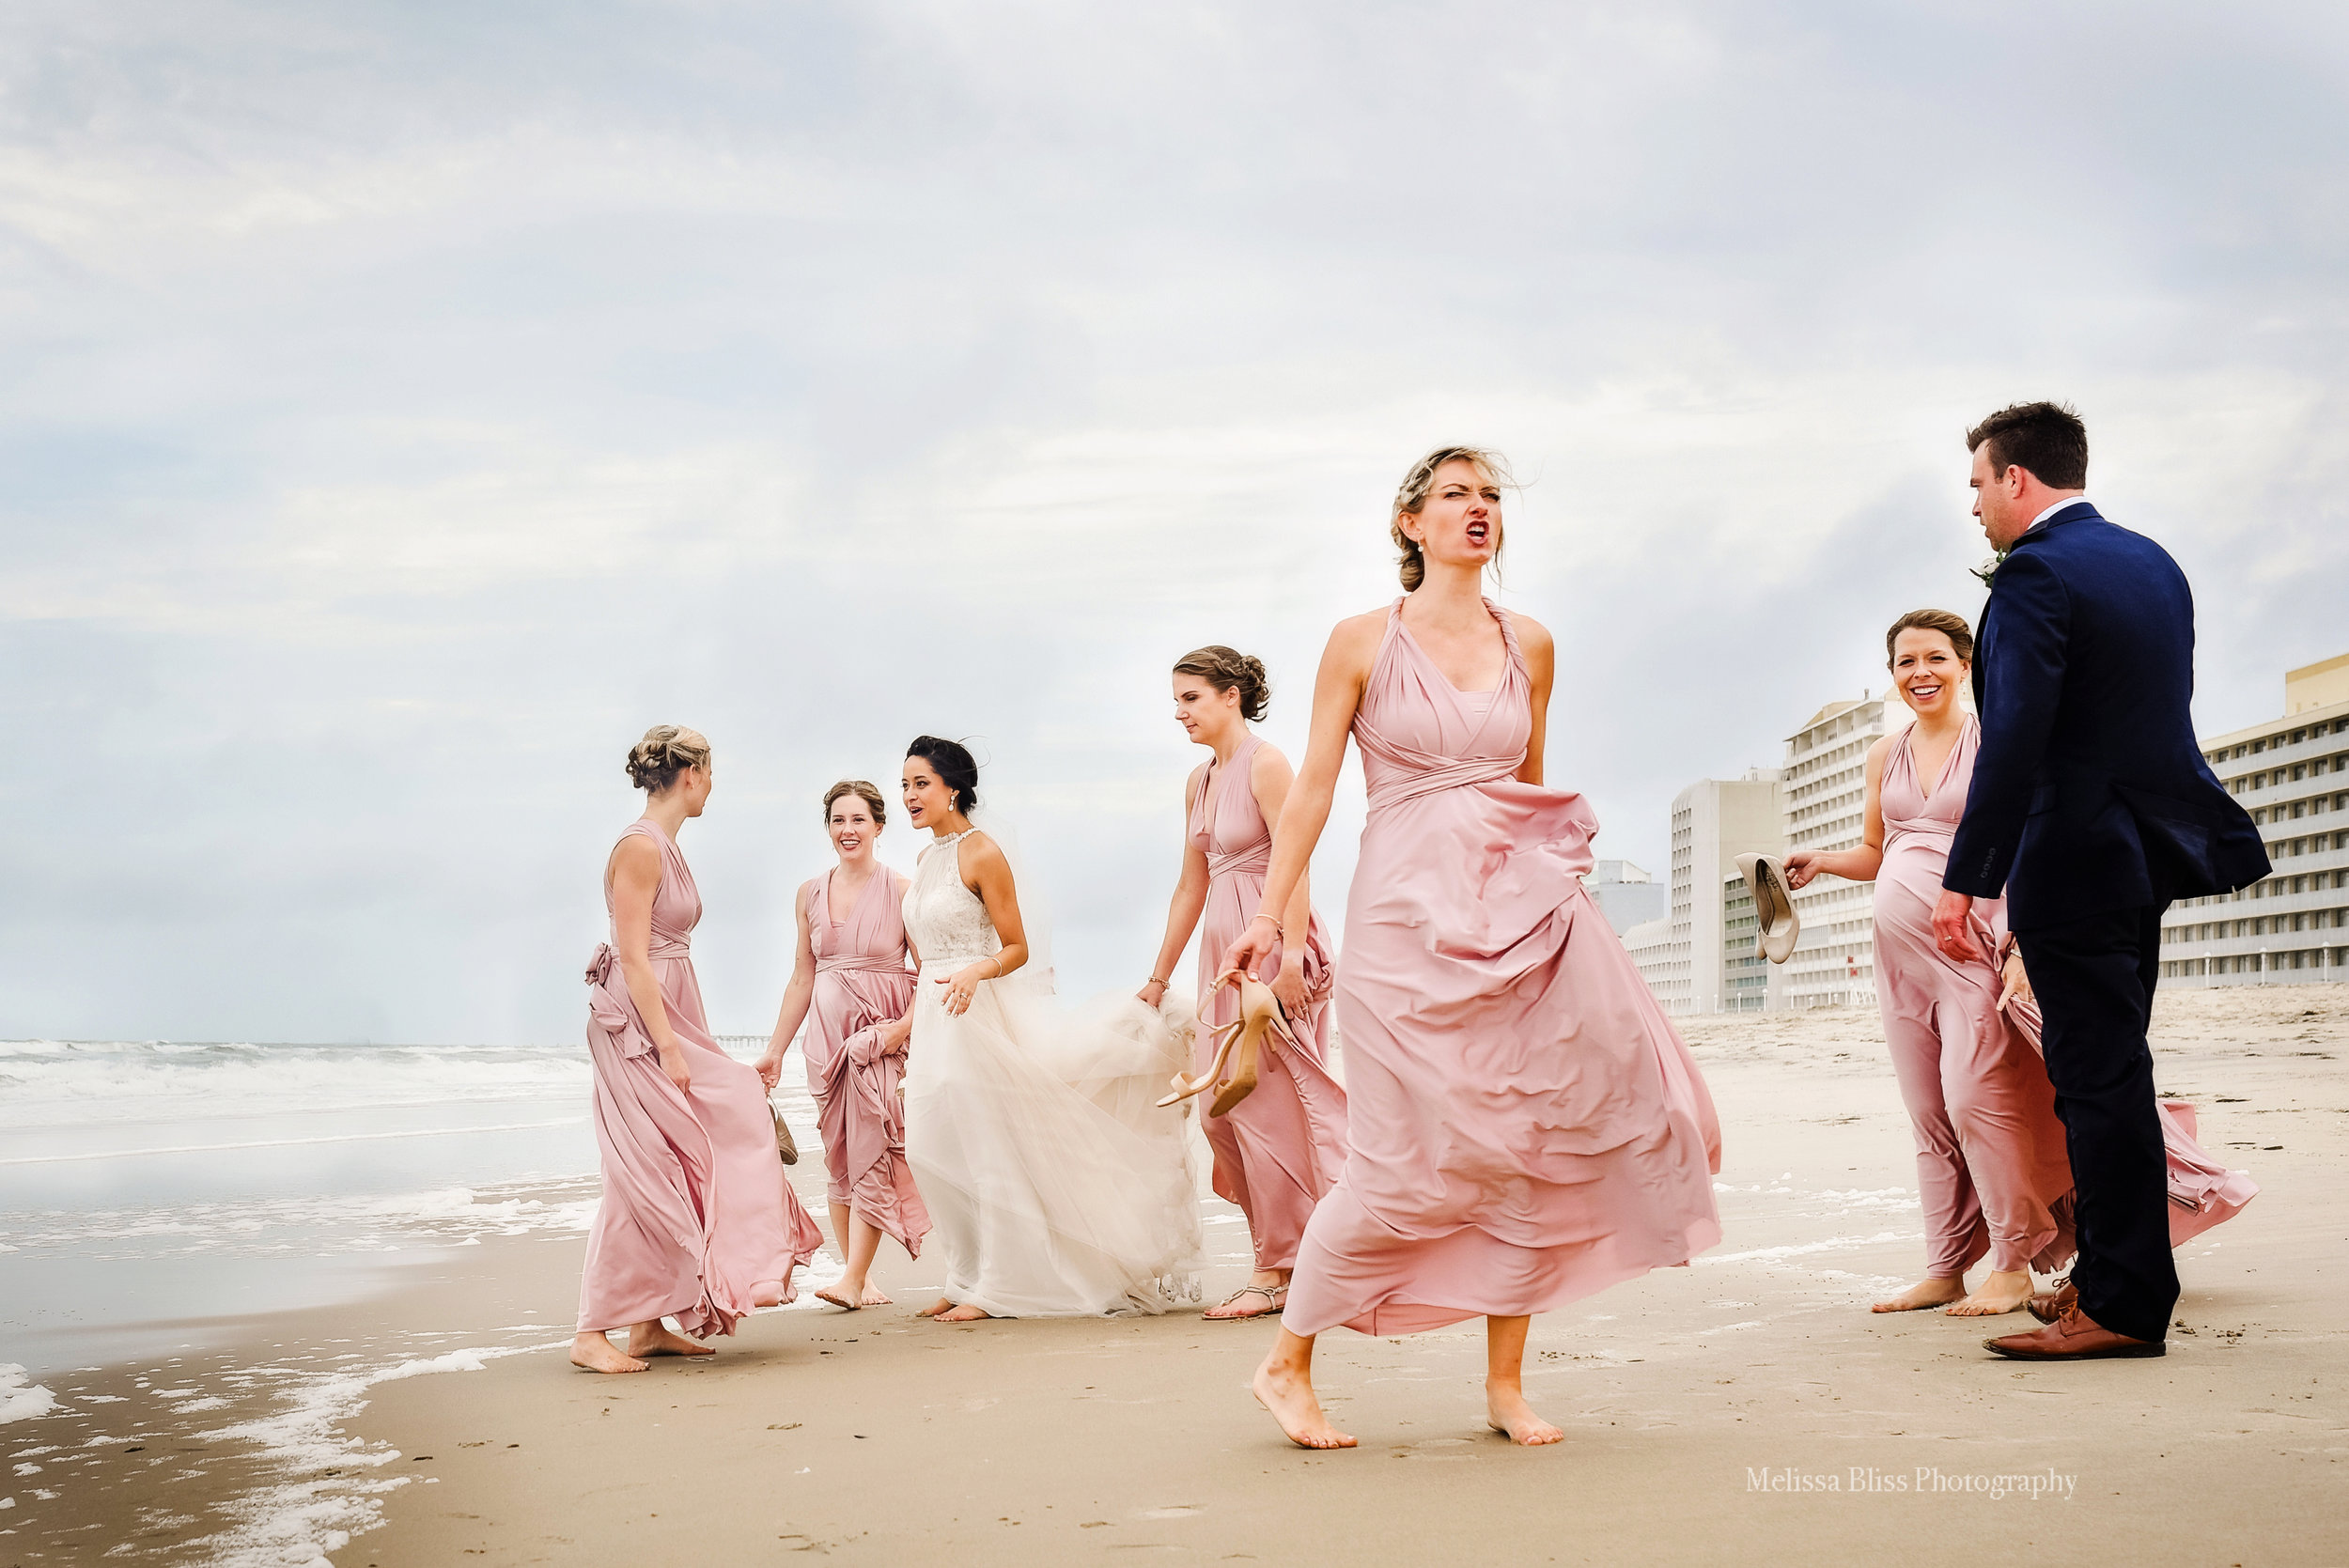 VA_wedding-photographer-melissa-bliss-photography-beach-wedding-destination-photographer.jpg